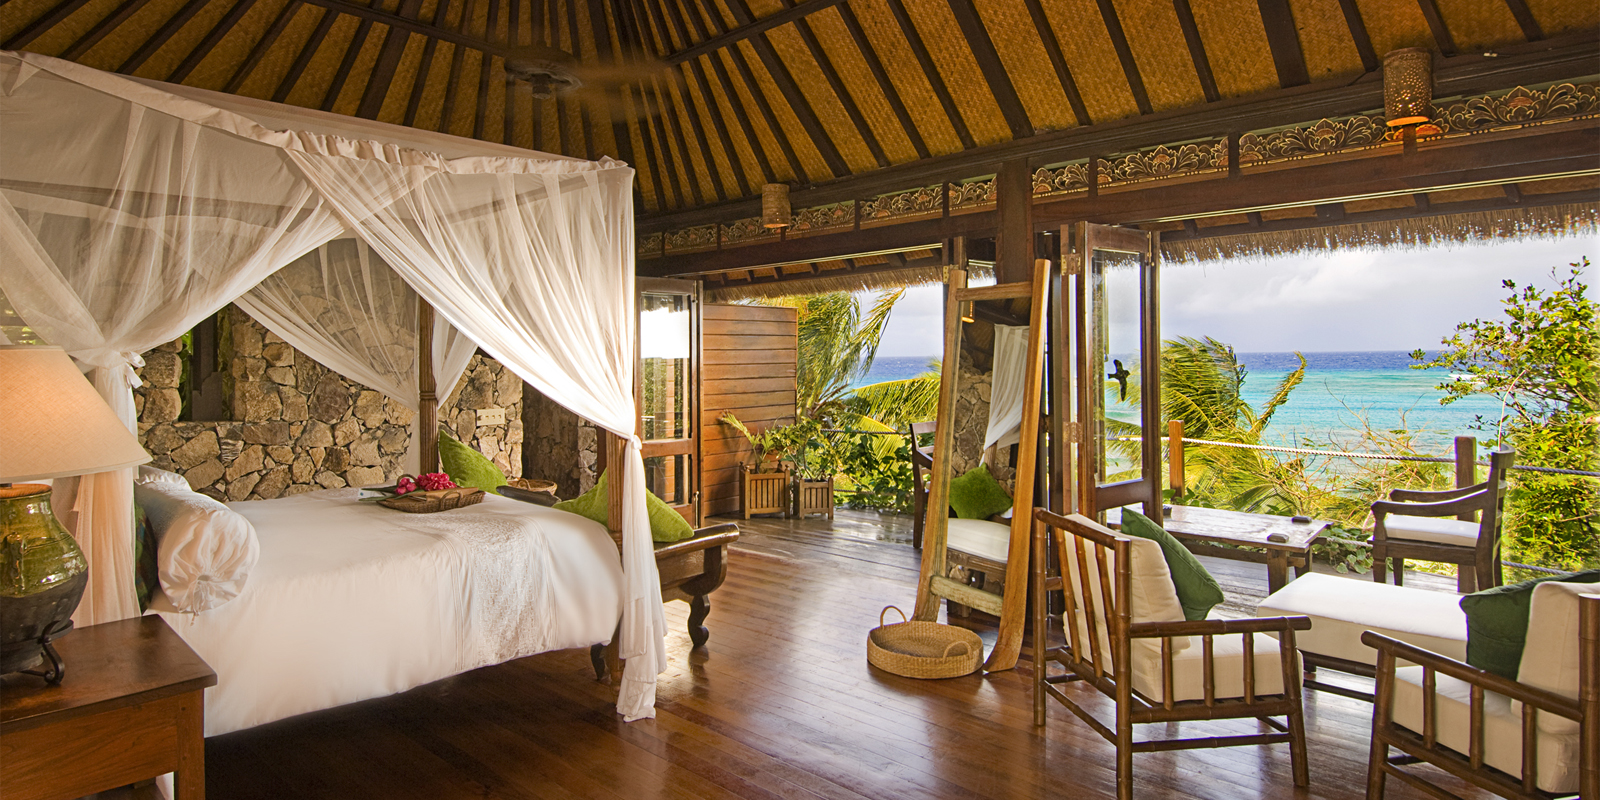 725602230130ae65 in addition Bali House2 furthermore Stock Photos Cliffs Near Uluwatu Temple Bali Indonesia Image27144903 further Hotel Review G612391 D317994 Reviews Art s Riverview Jungle Lodge Takua Pa Phang Nga Province besides . on bali beach house plans